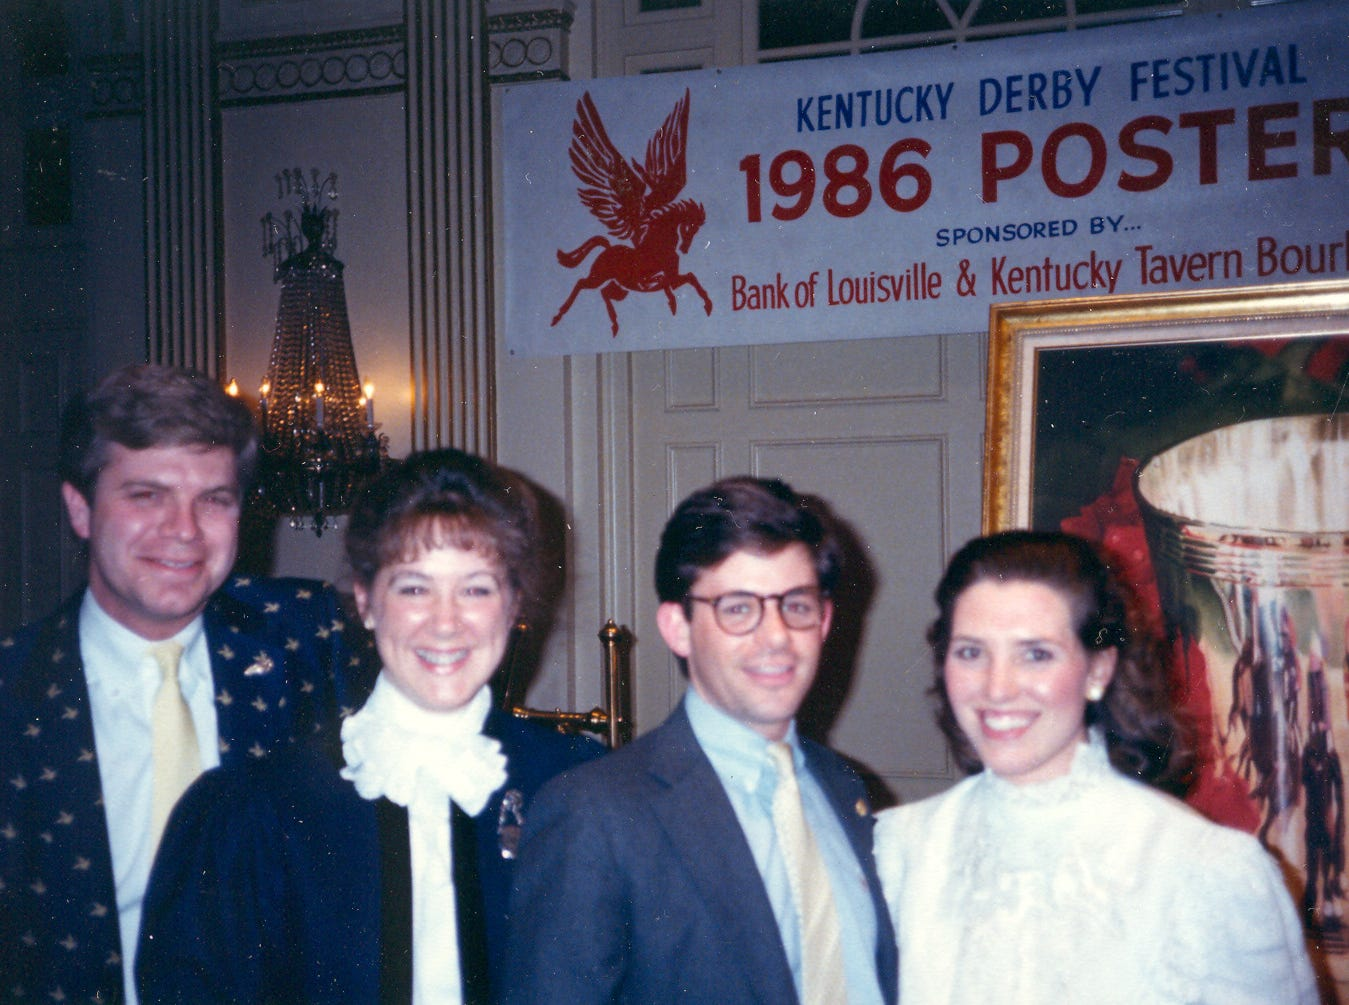 Mike Berry, president and CEO of the Kentucky Derby Festival, pictured in 1986.